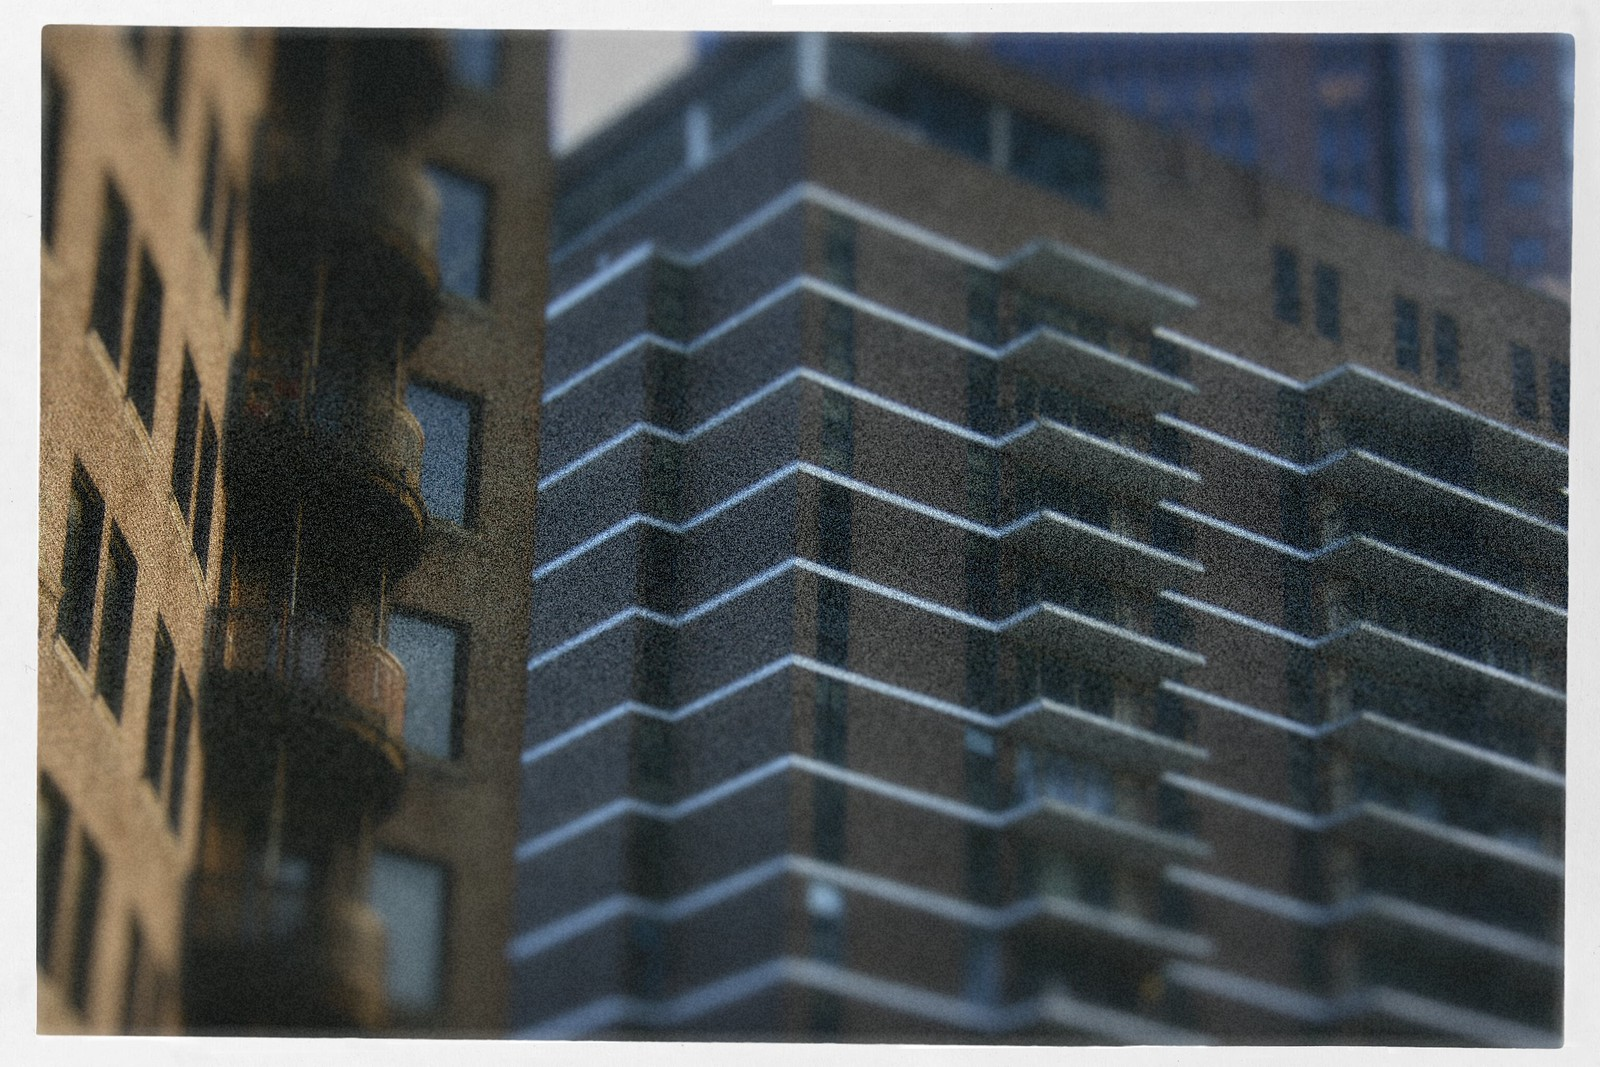 Balconies of the Windsor over Peachtree, Ponce and Peachtree, Atlanta, 2015